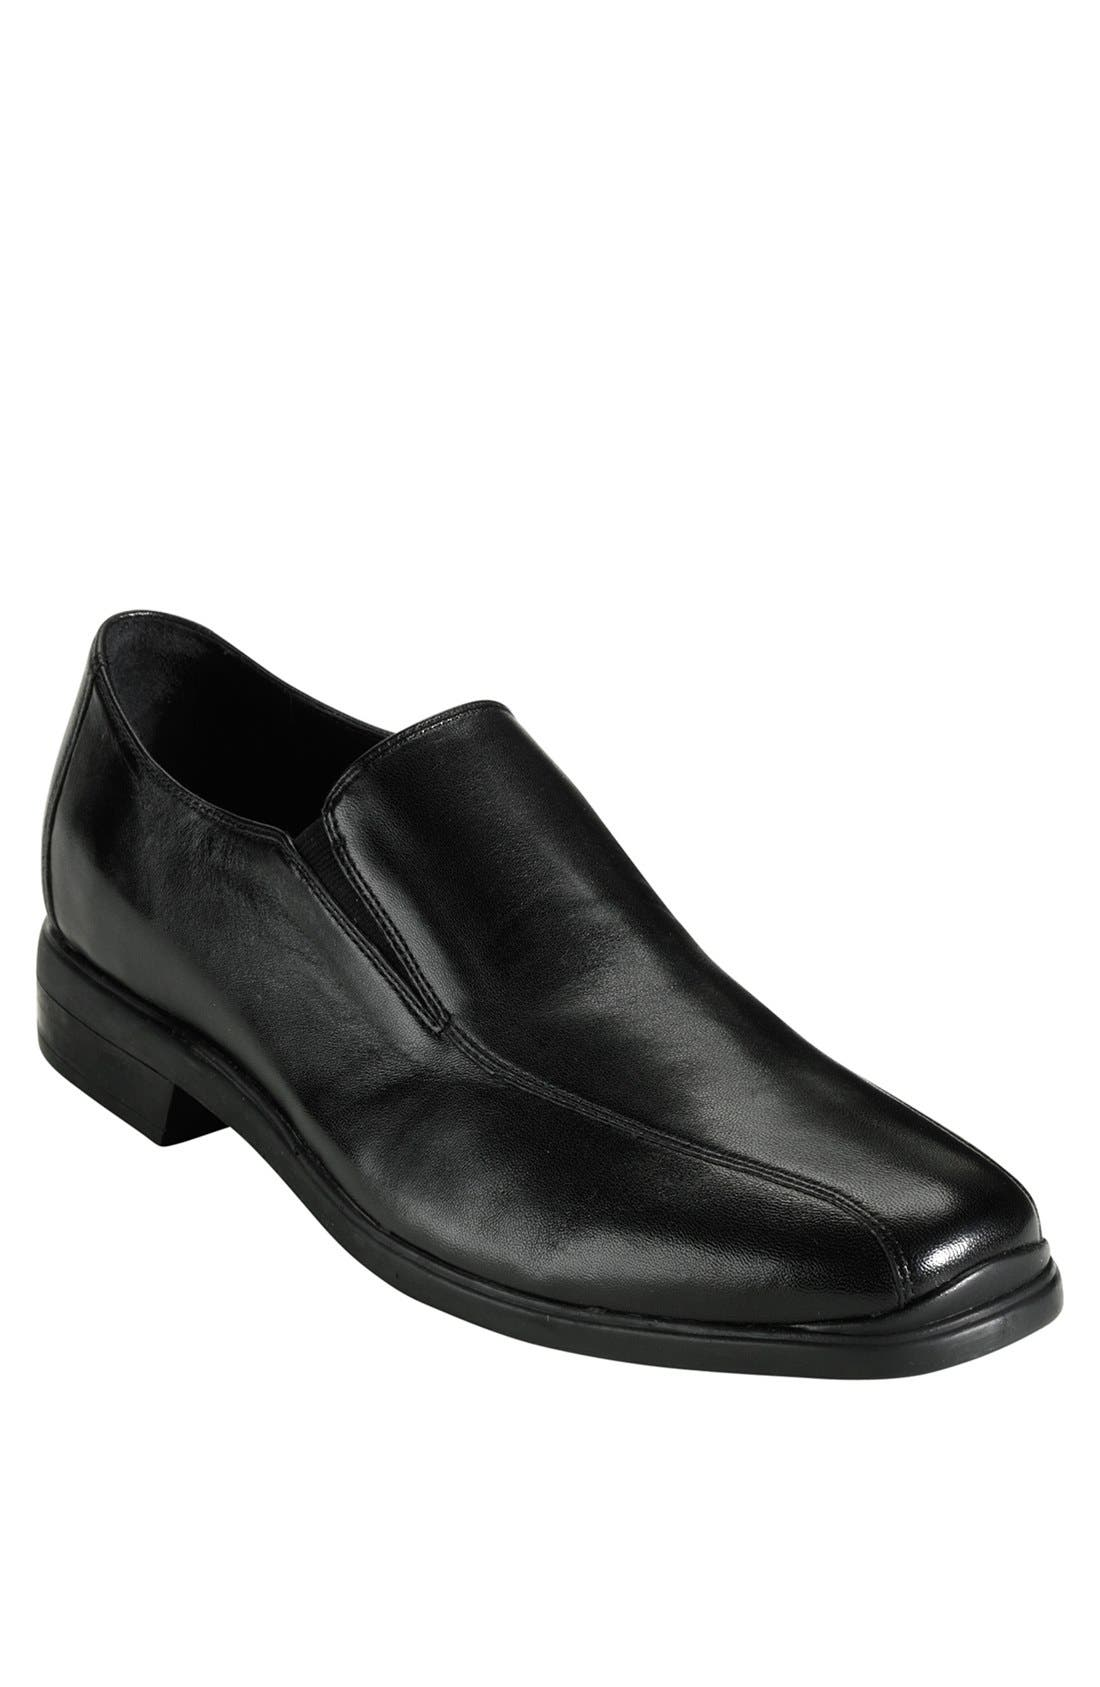 Alternate Image 1 Selected - Cole Haan 'Air Stylar' Bicycle Toe Loafer   (Men)